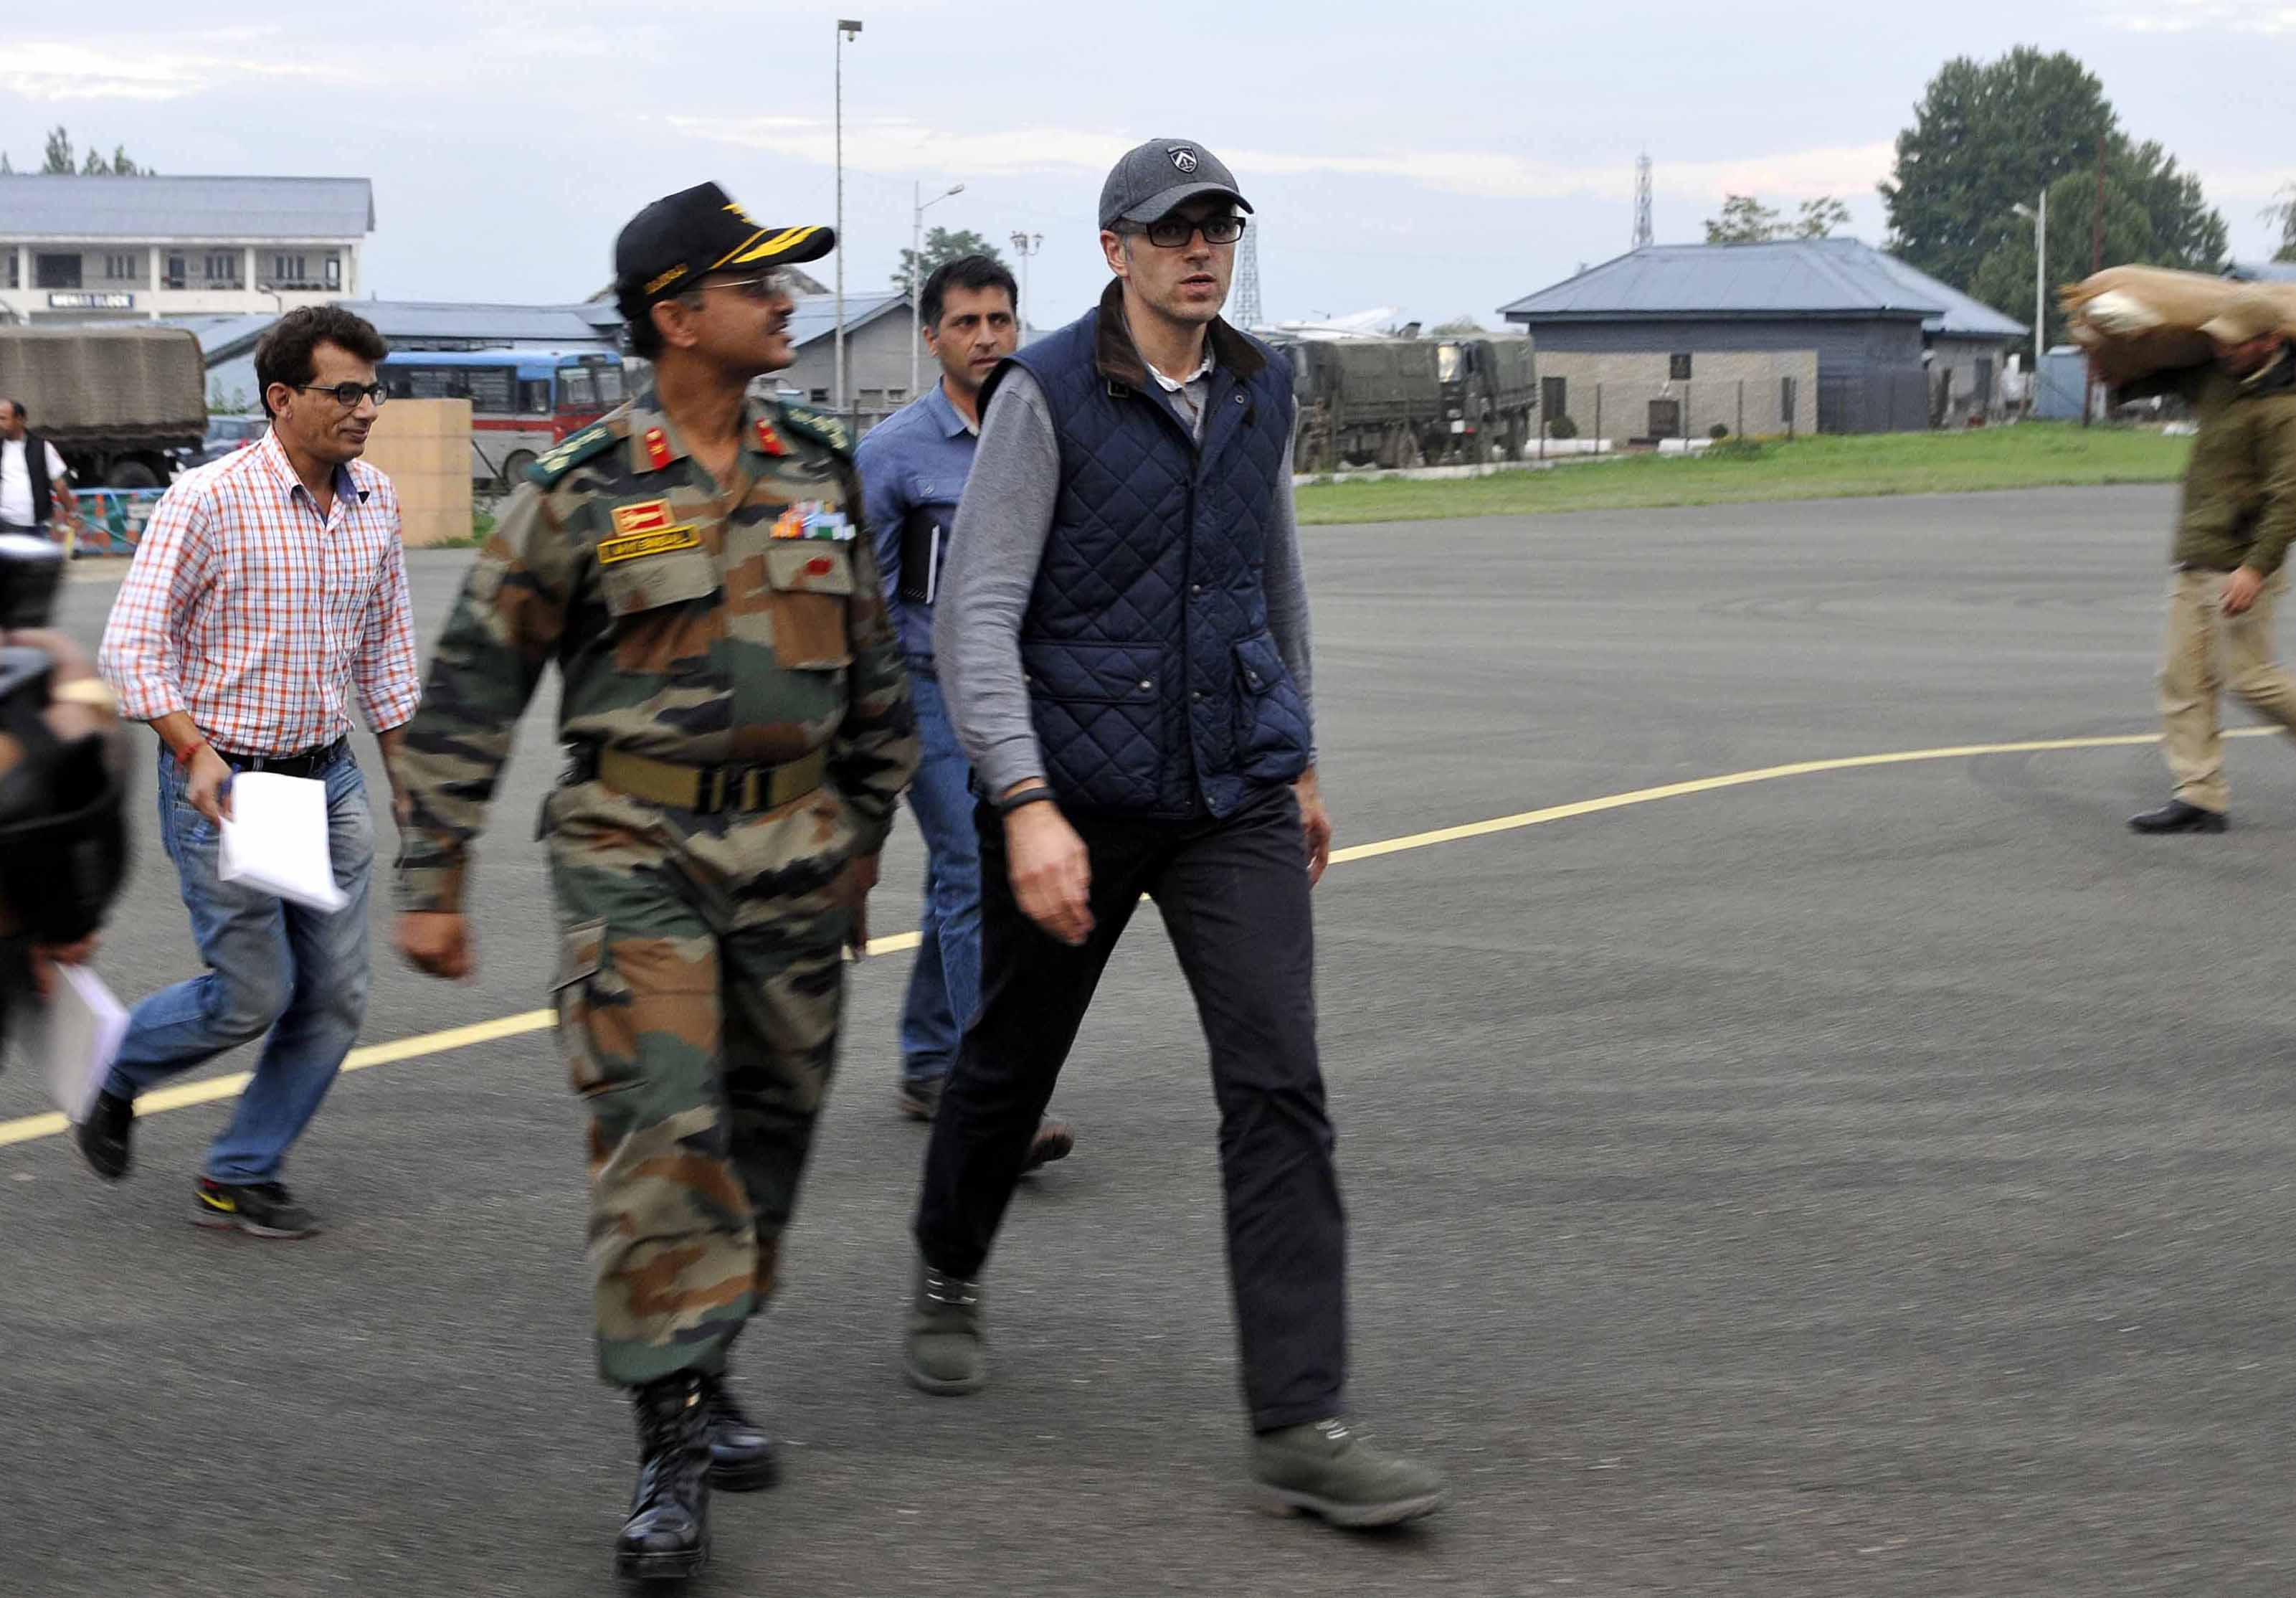 Jammu and Kashmir Chief Minister Omar Abdullah arrives at the airport to inspect the rescue and relief operations following flooding on September 9, 2014 in Srinagar, India.